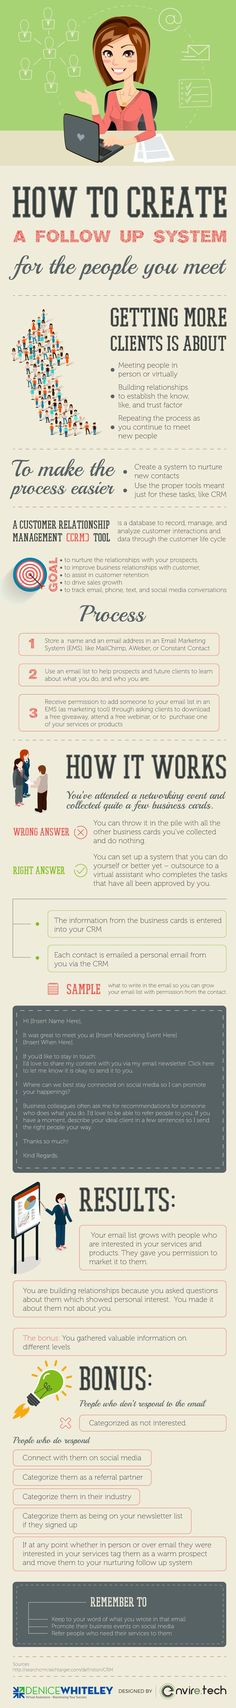 Tips on turning the people you meet into business clients You need for support launching your network marketing venture? Find more info below Starting A Business, Business Planning, Business Tips, Online Business, Business Infographics, Cleaning Business, Successful Business, Business Website, Business Opportunities